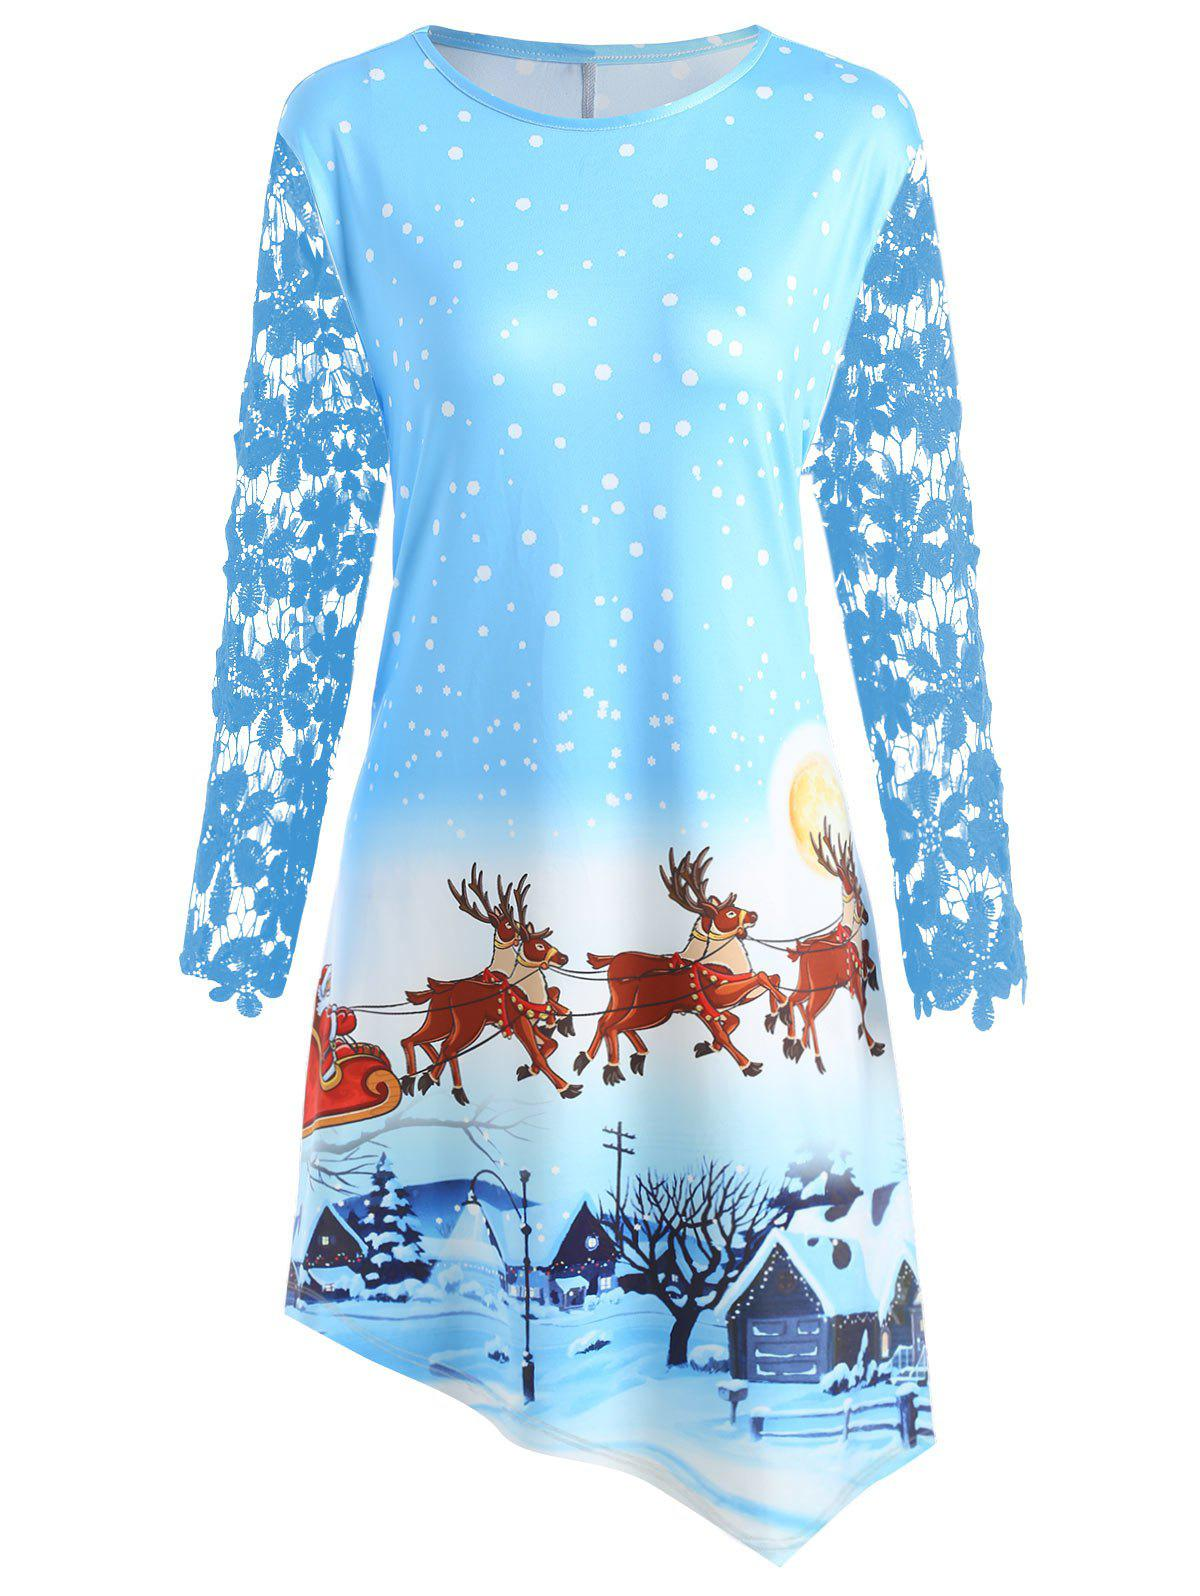 Christmas Night Scene Printed Plus Size Dress - CLOUDY 5XL